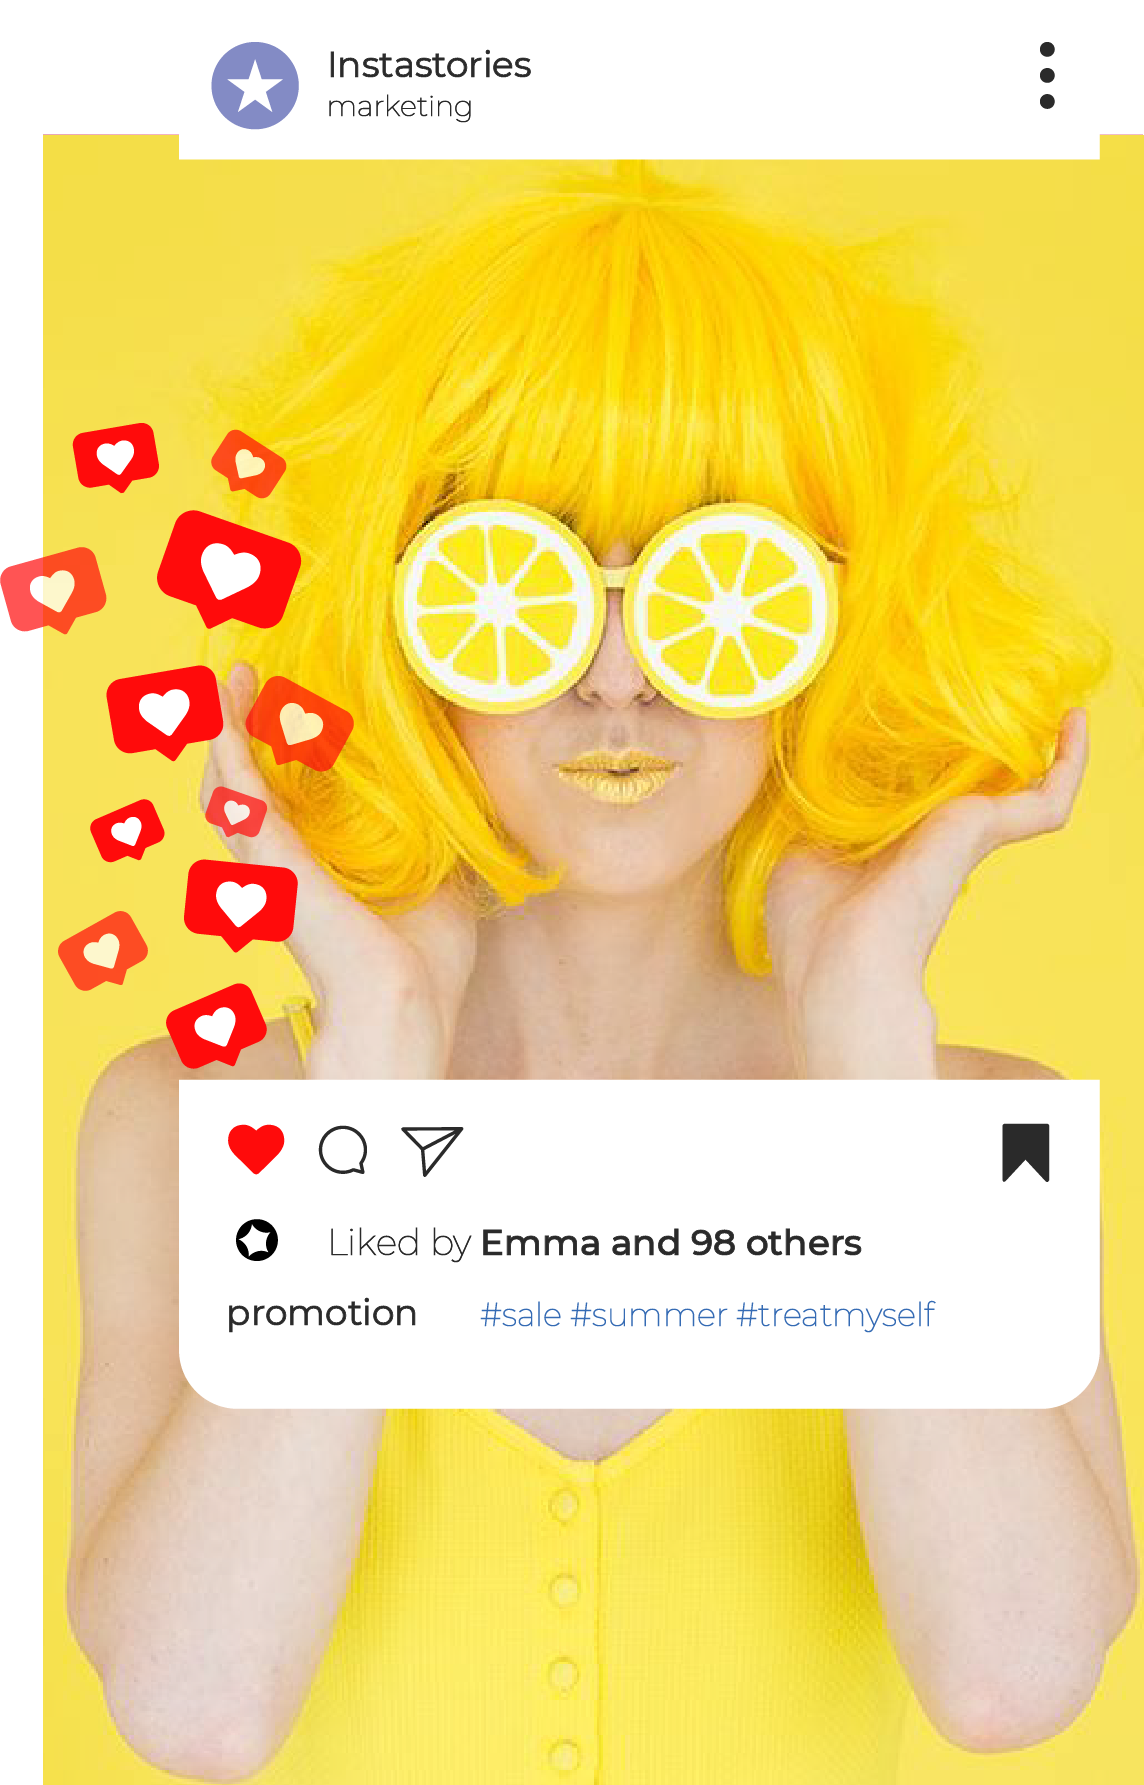 AI-backed buyer persona